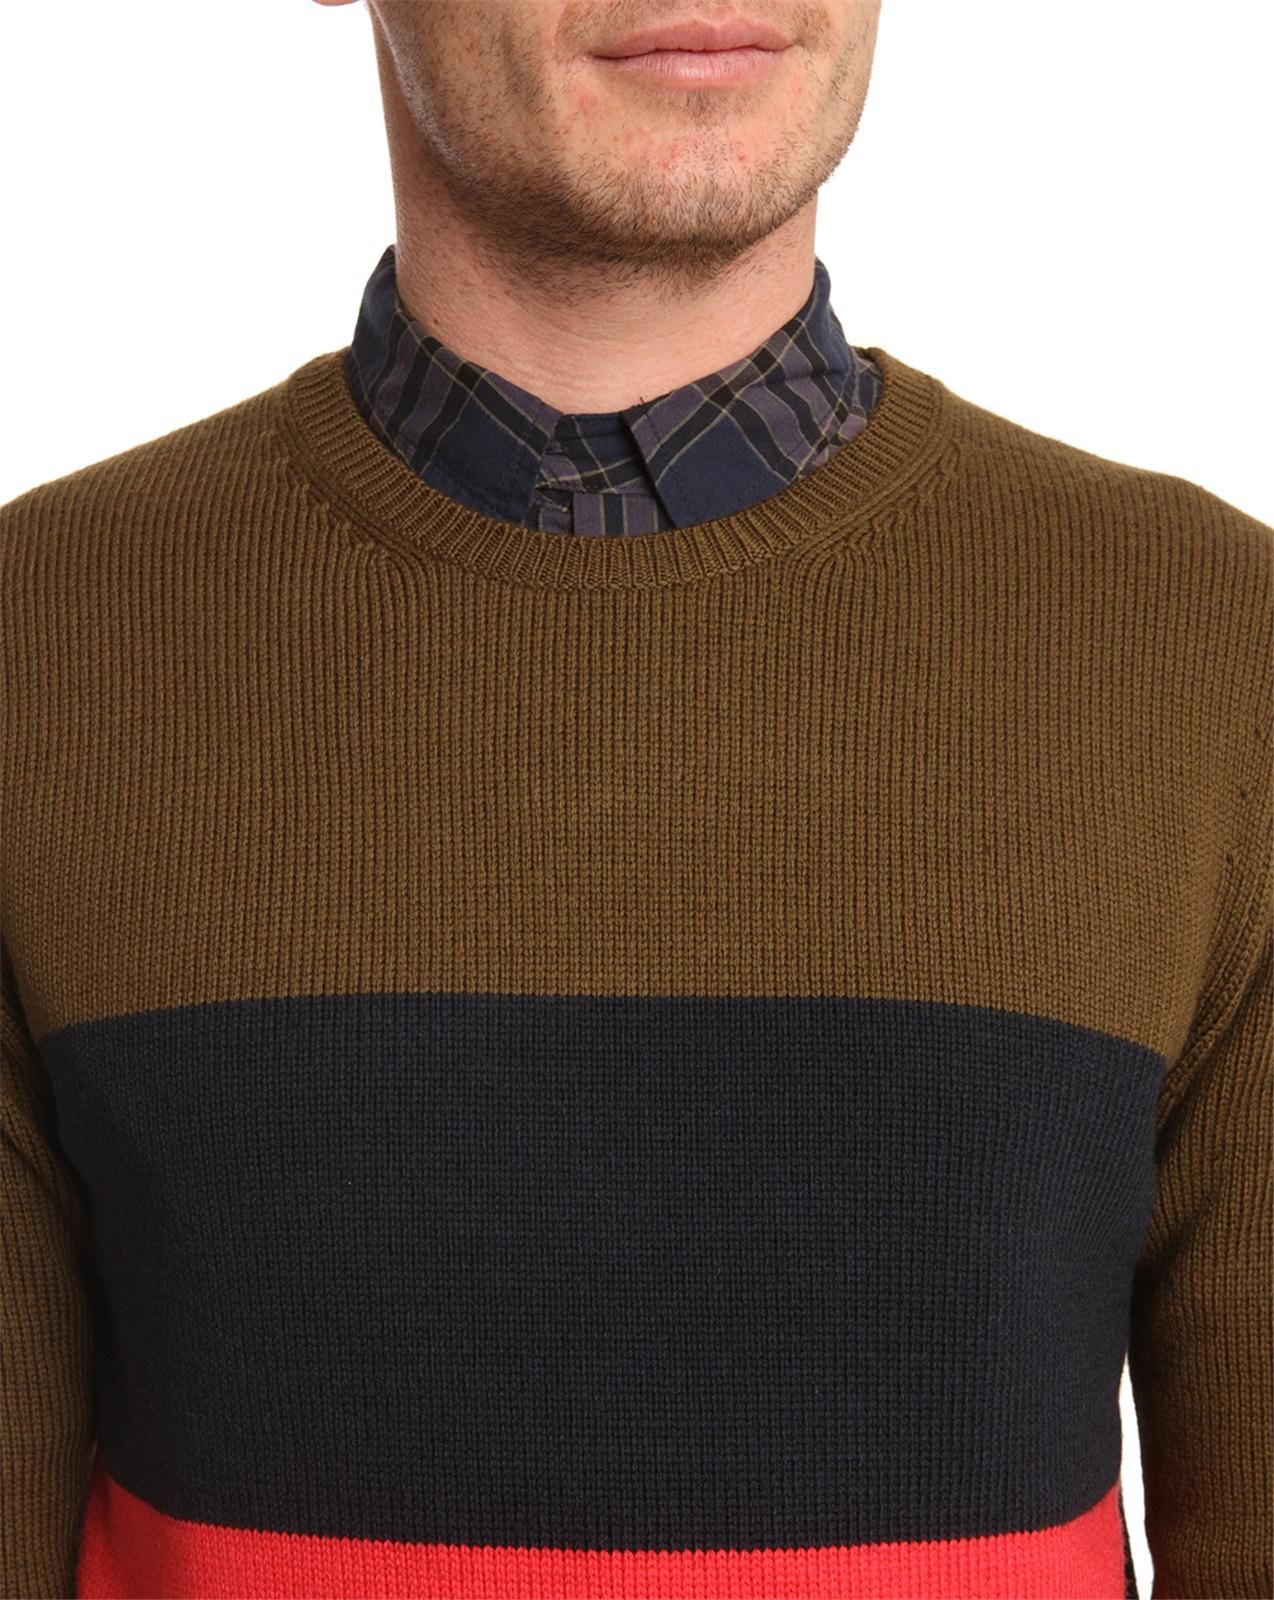 marc by marc jacobs freddie khaki striped sweater in natural for men lyst. Black Bedroom Furniture Sets. Home Design Ideas